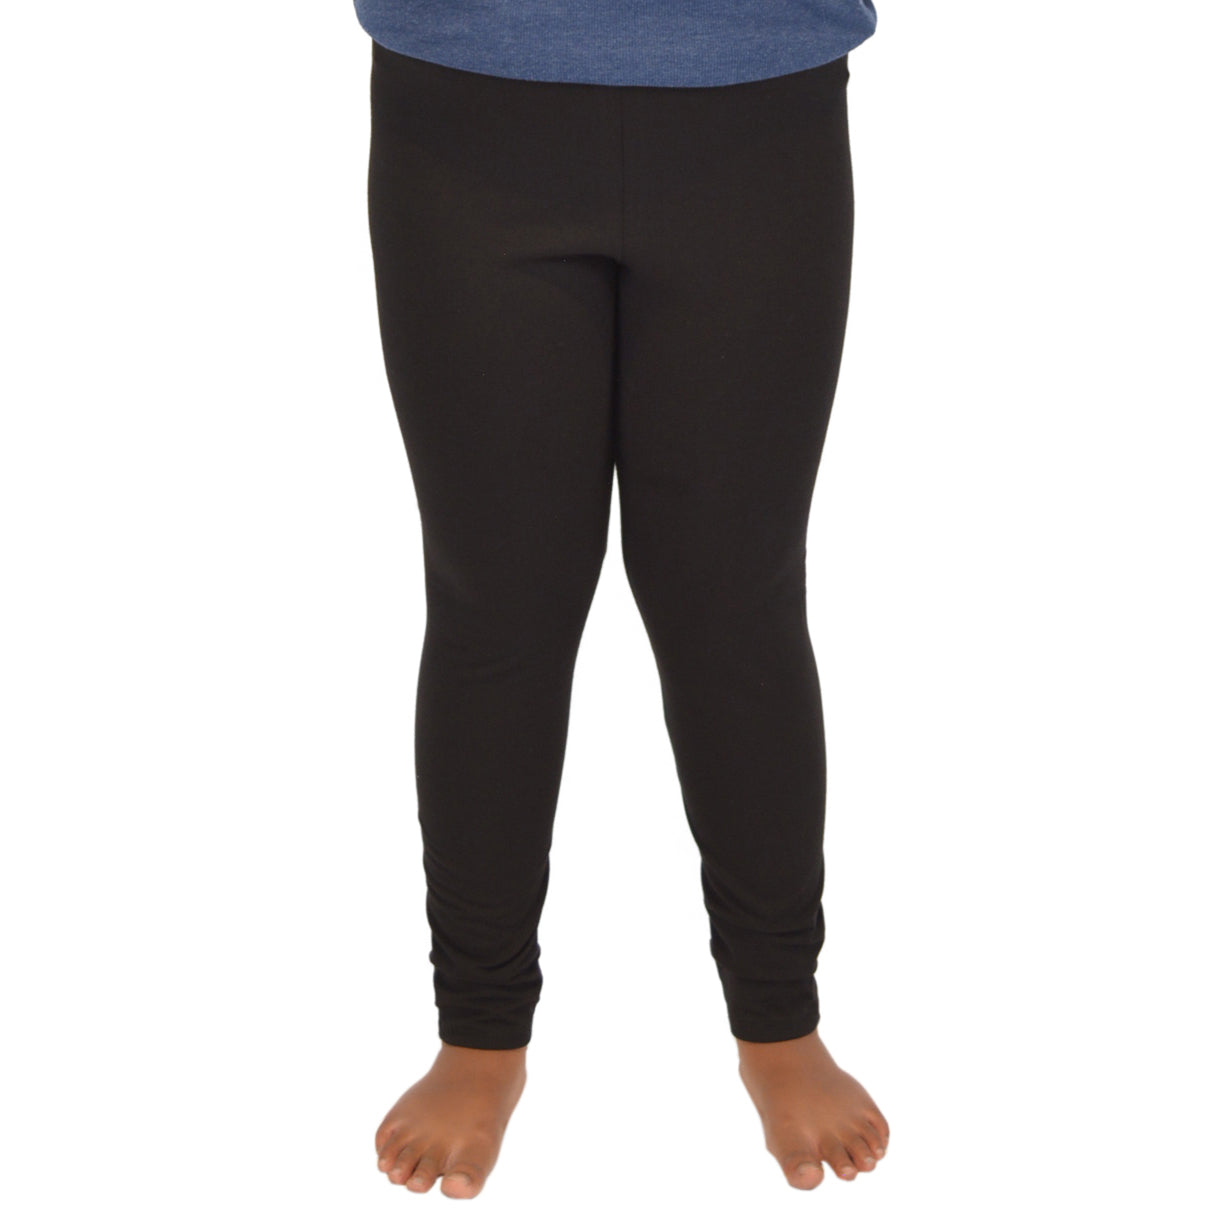 GP Girl's PLUS Cotton Leggings